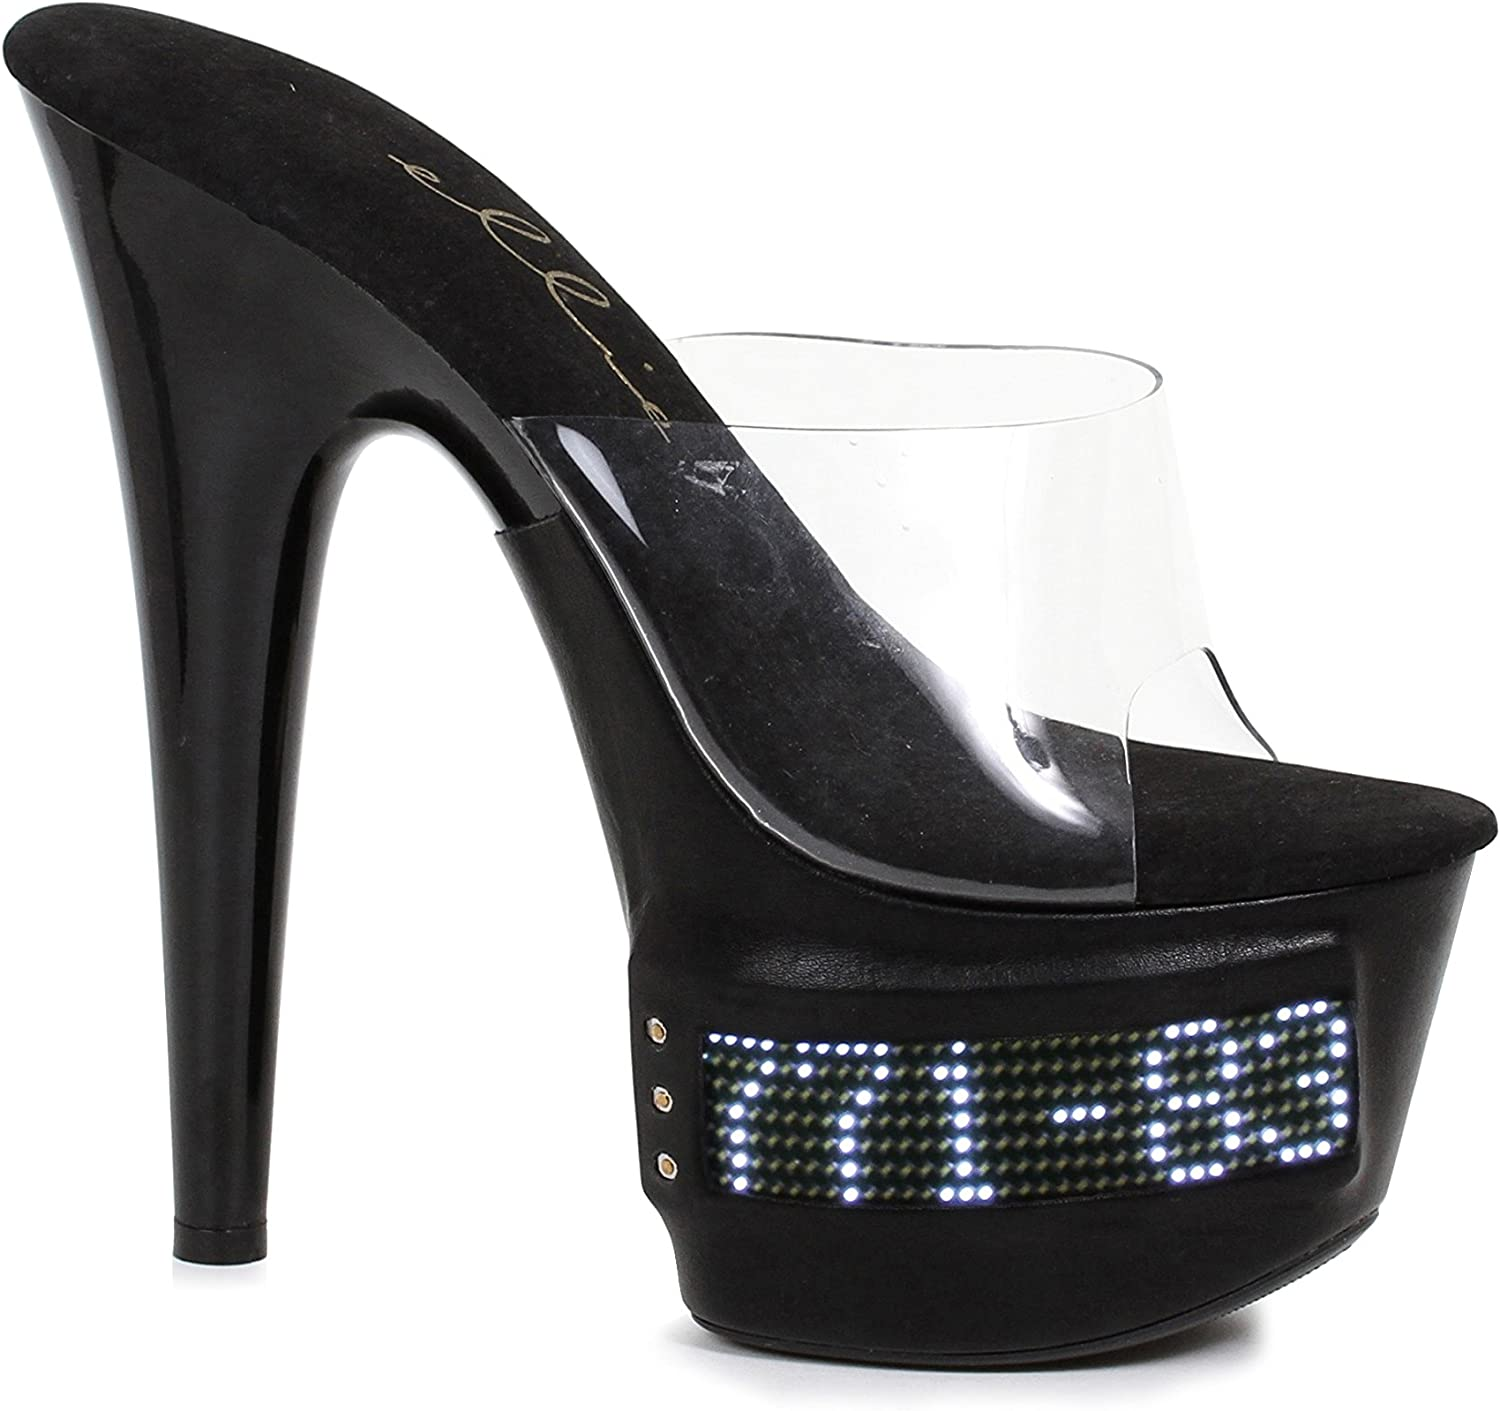 Ellie shoes 7 Inch Pointed Stiletto Mule LED